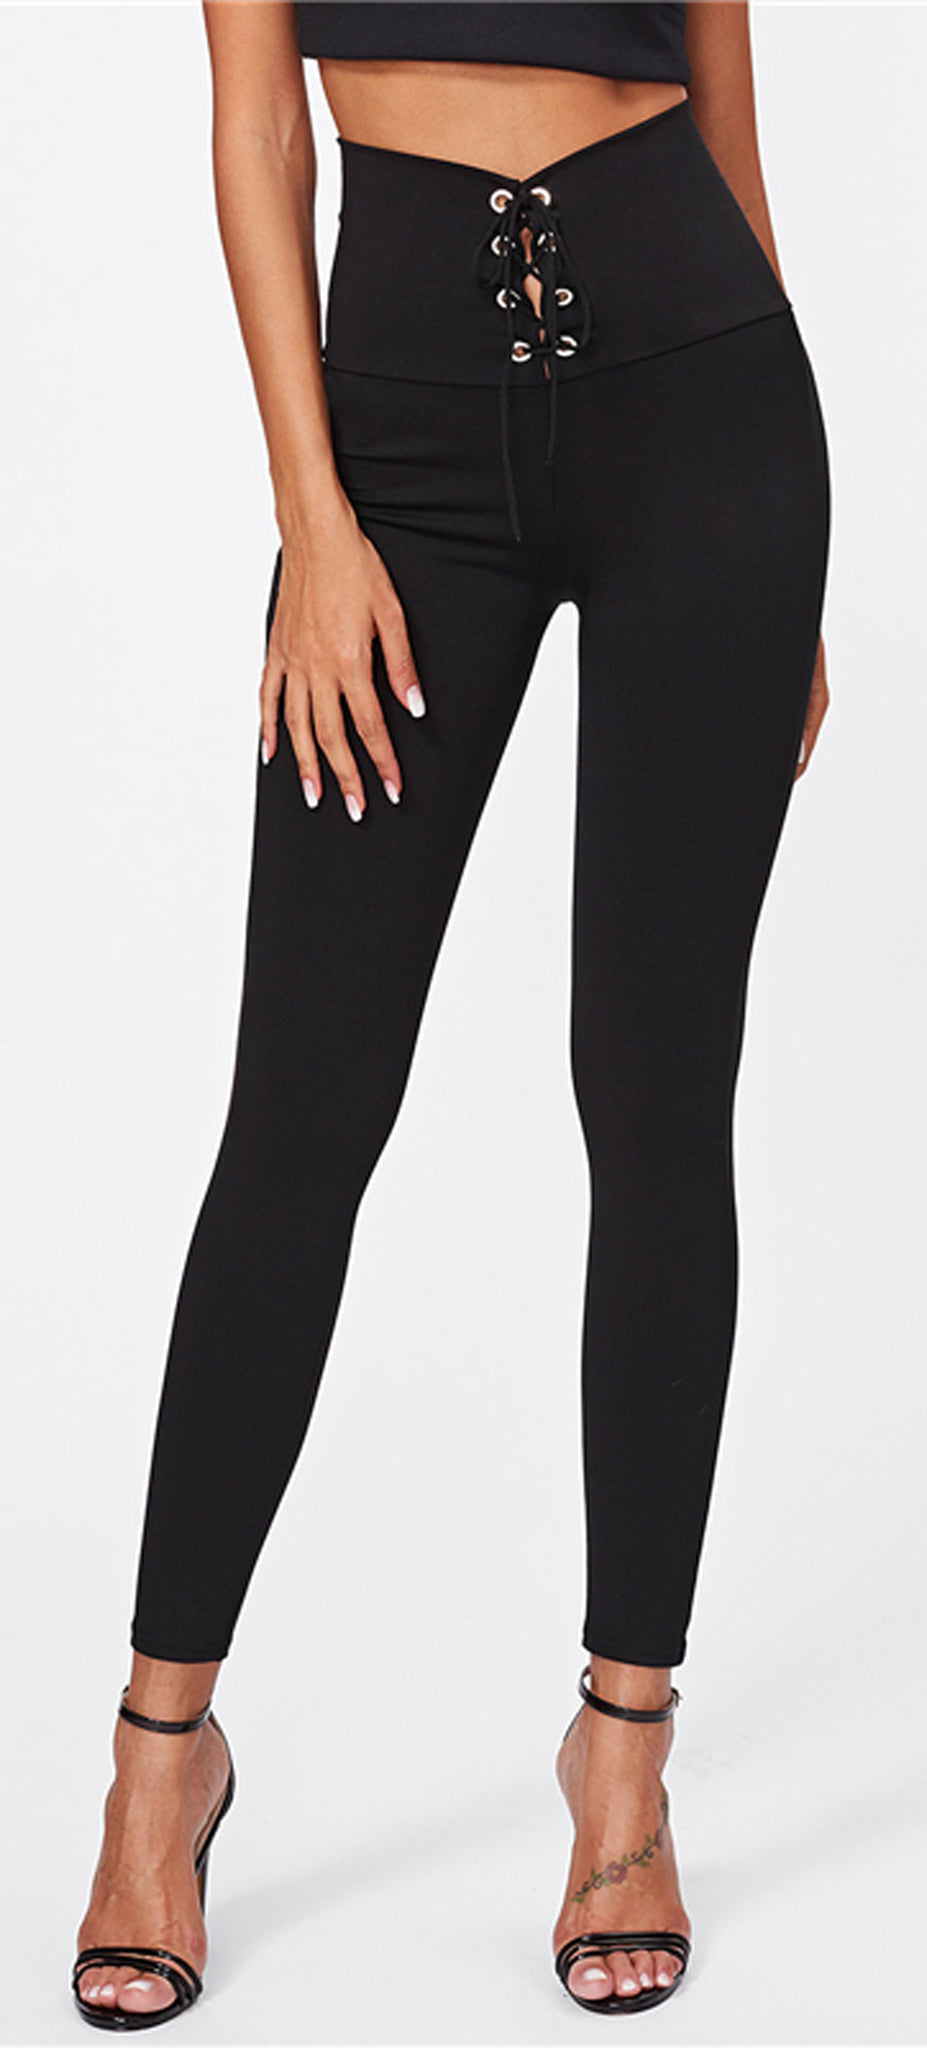 7dc071538d ... Cute Baddie Outfit Ideas for Women - Hot Lace Up High Waisted Leggings  in Black ...